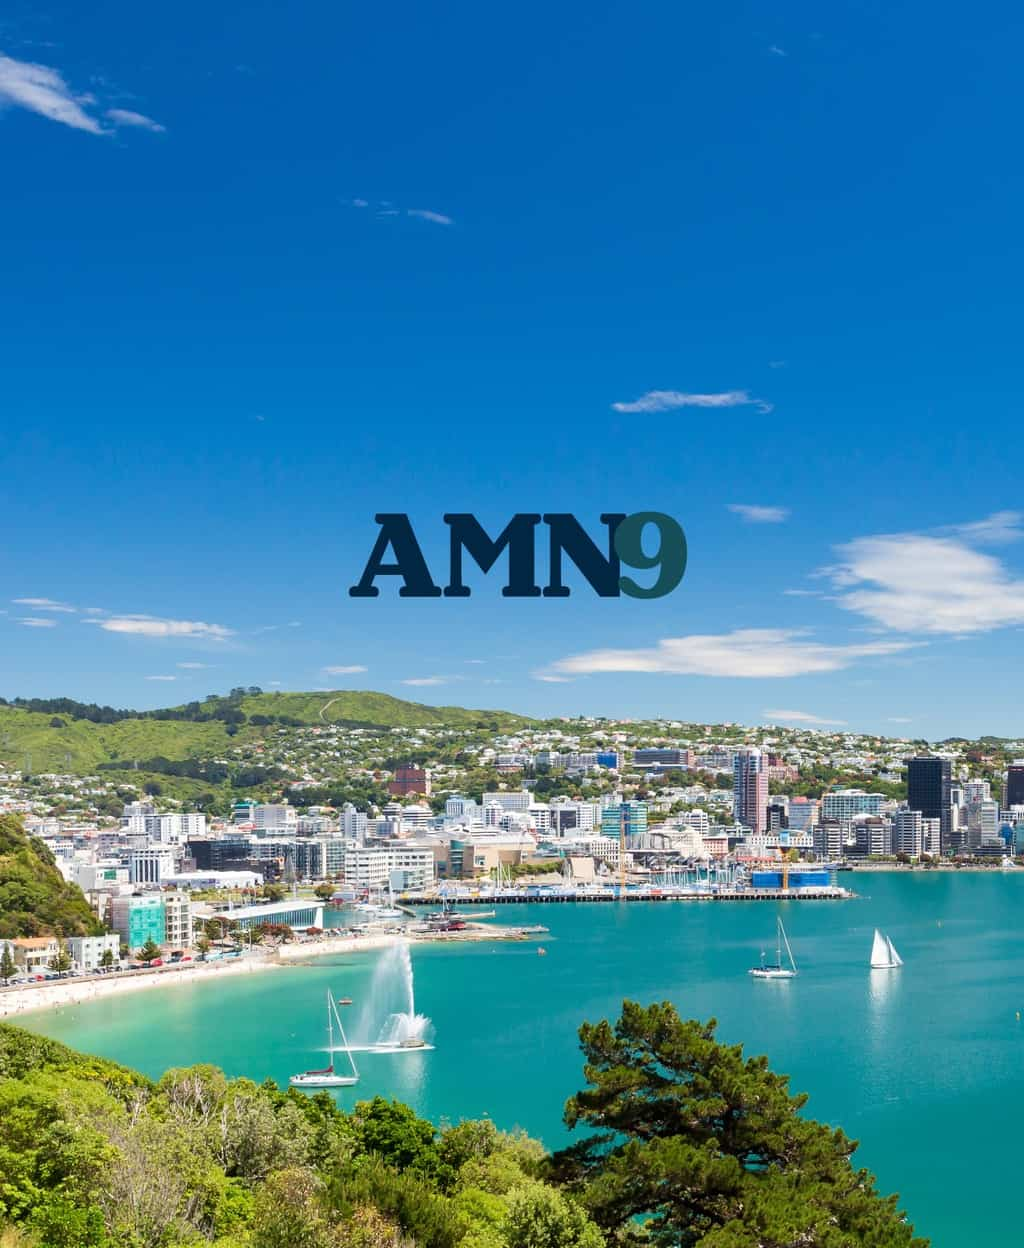 AMN9 Wellington 10-14 February 2019